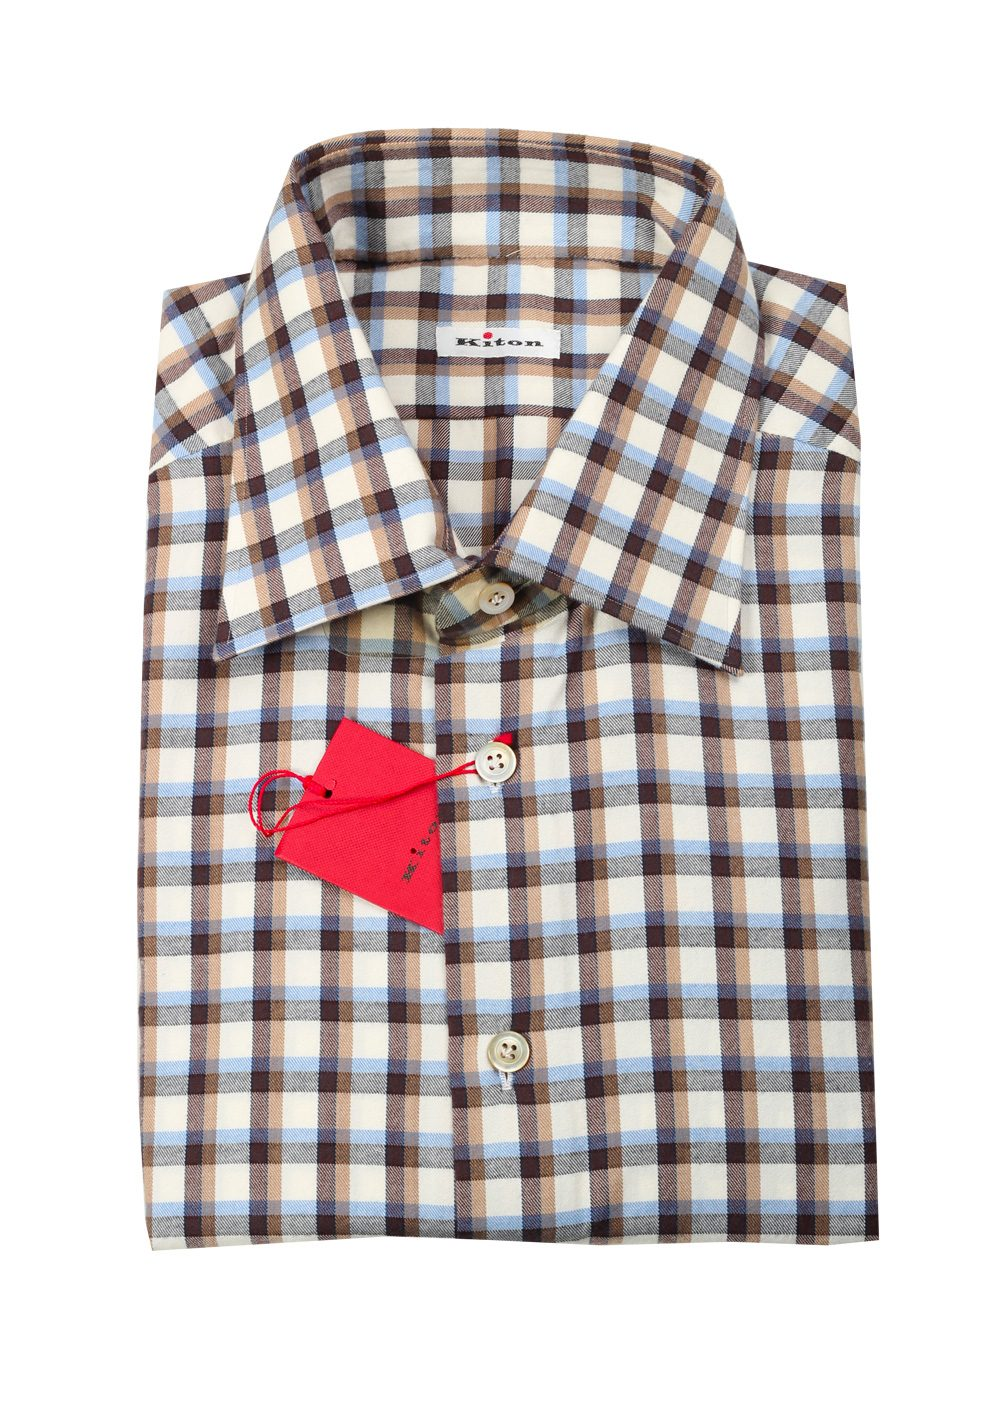 Kiton Checked Flannel Shirt 44 / 17,5 U.S. | Costume Limité